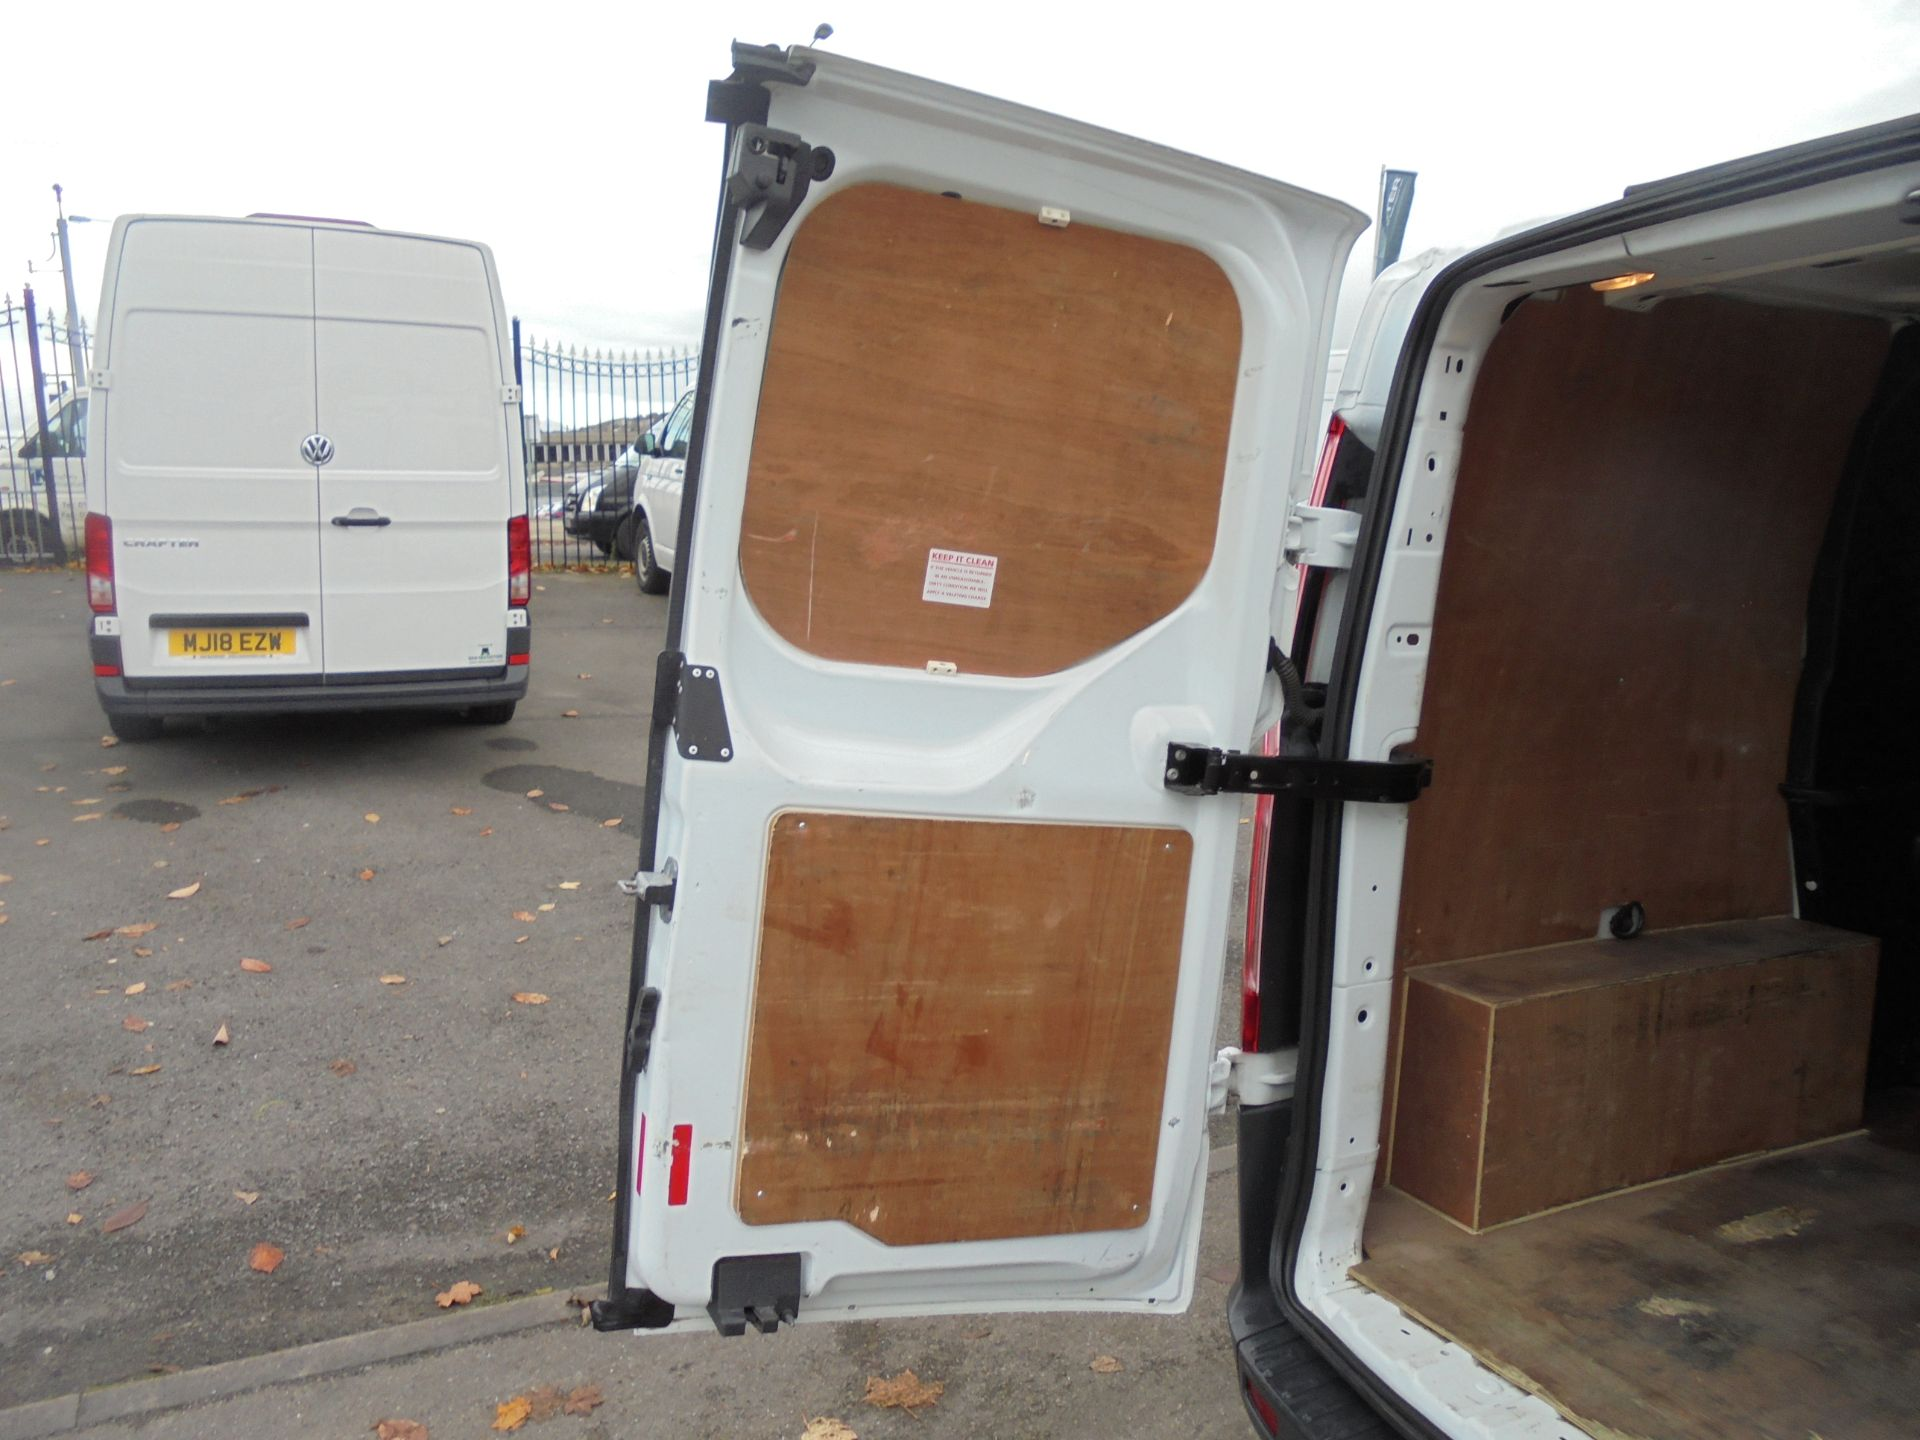 2017 Ford Transit Custom  290 L1 2.0TDCI DOUBLE CAB LOW ROOF 105PS EURO 6 (FP17UUN) Image 27